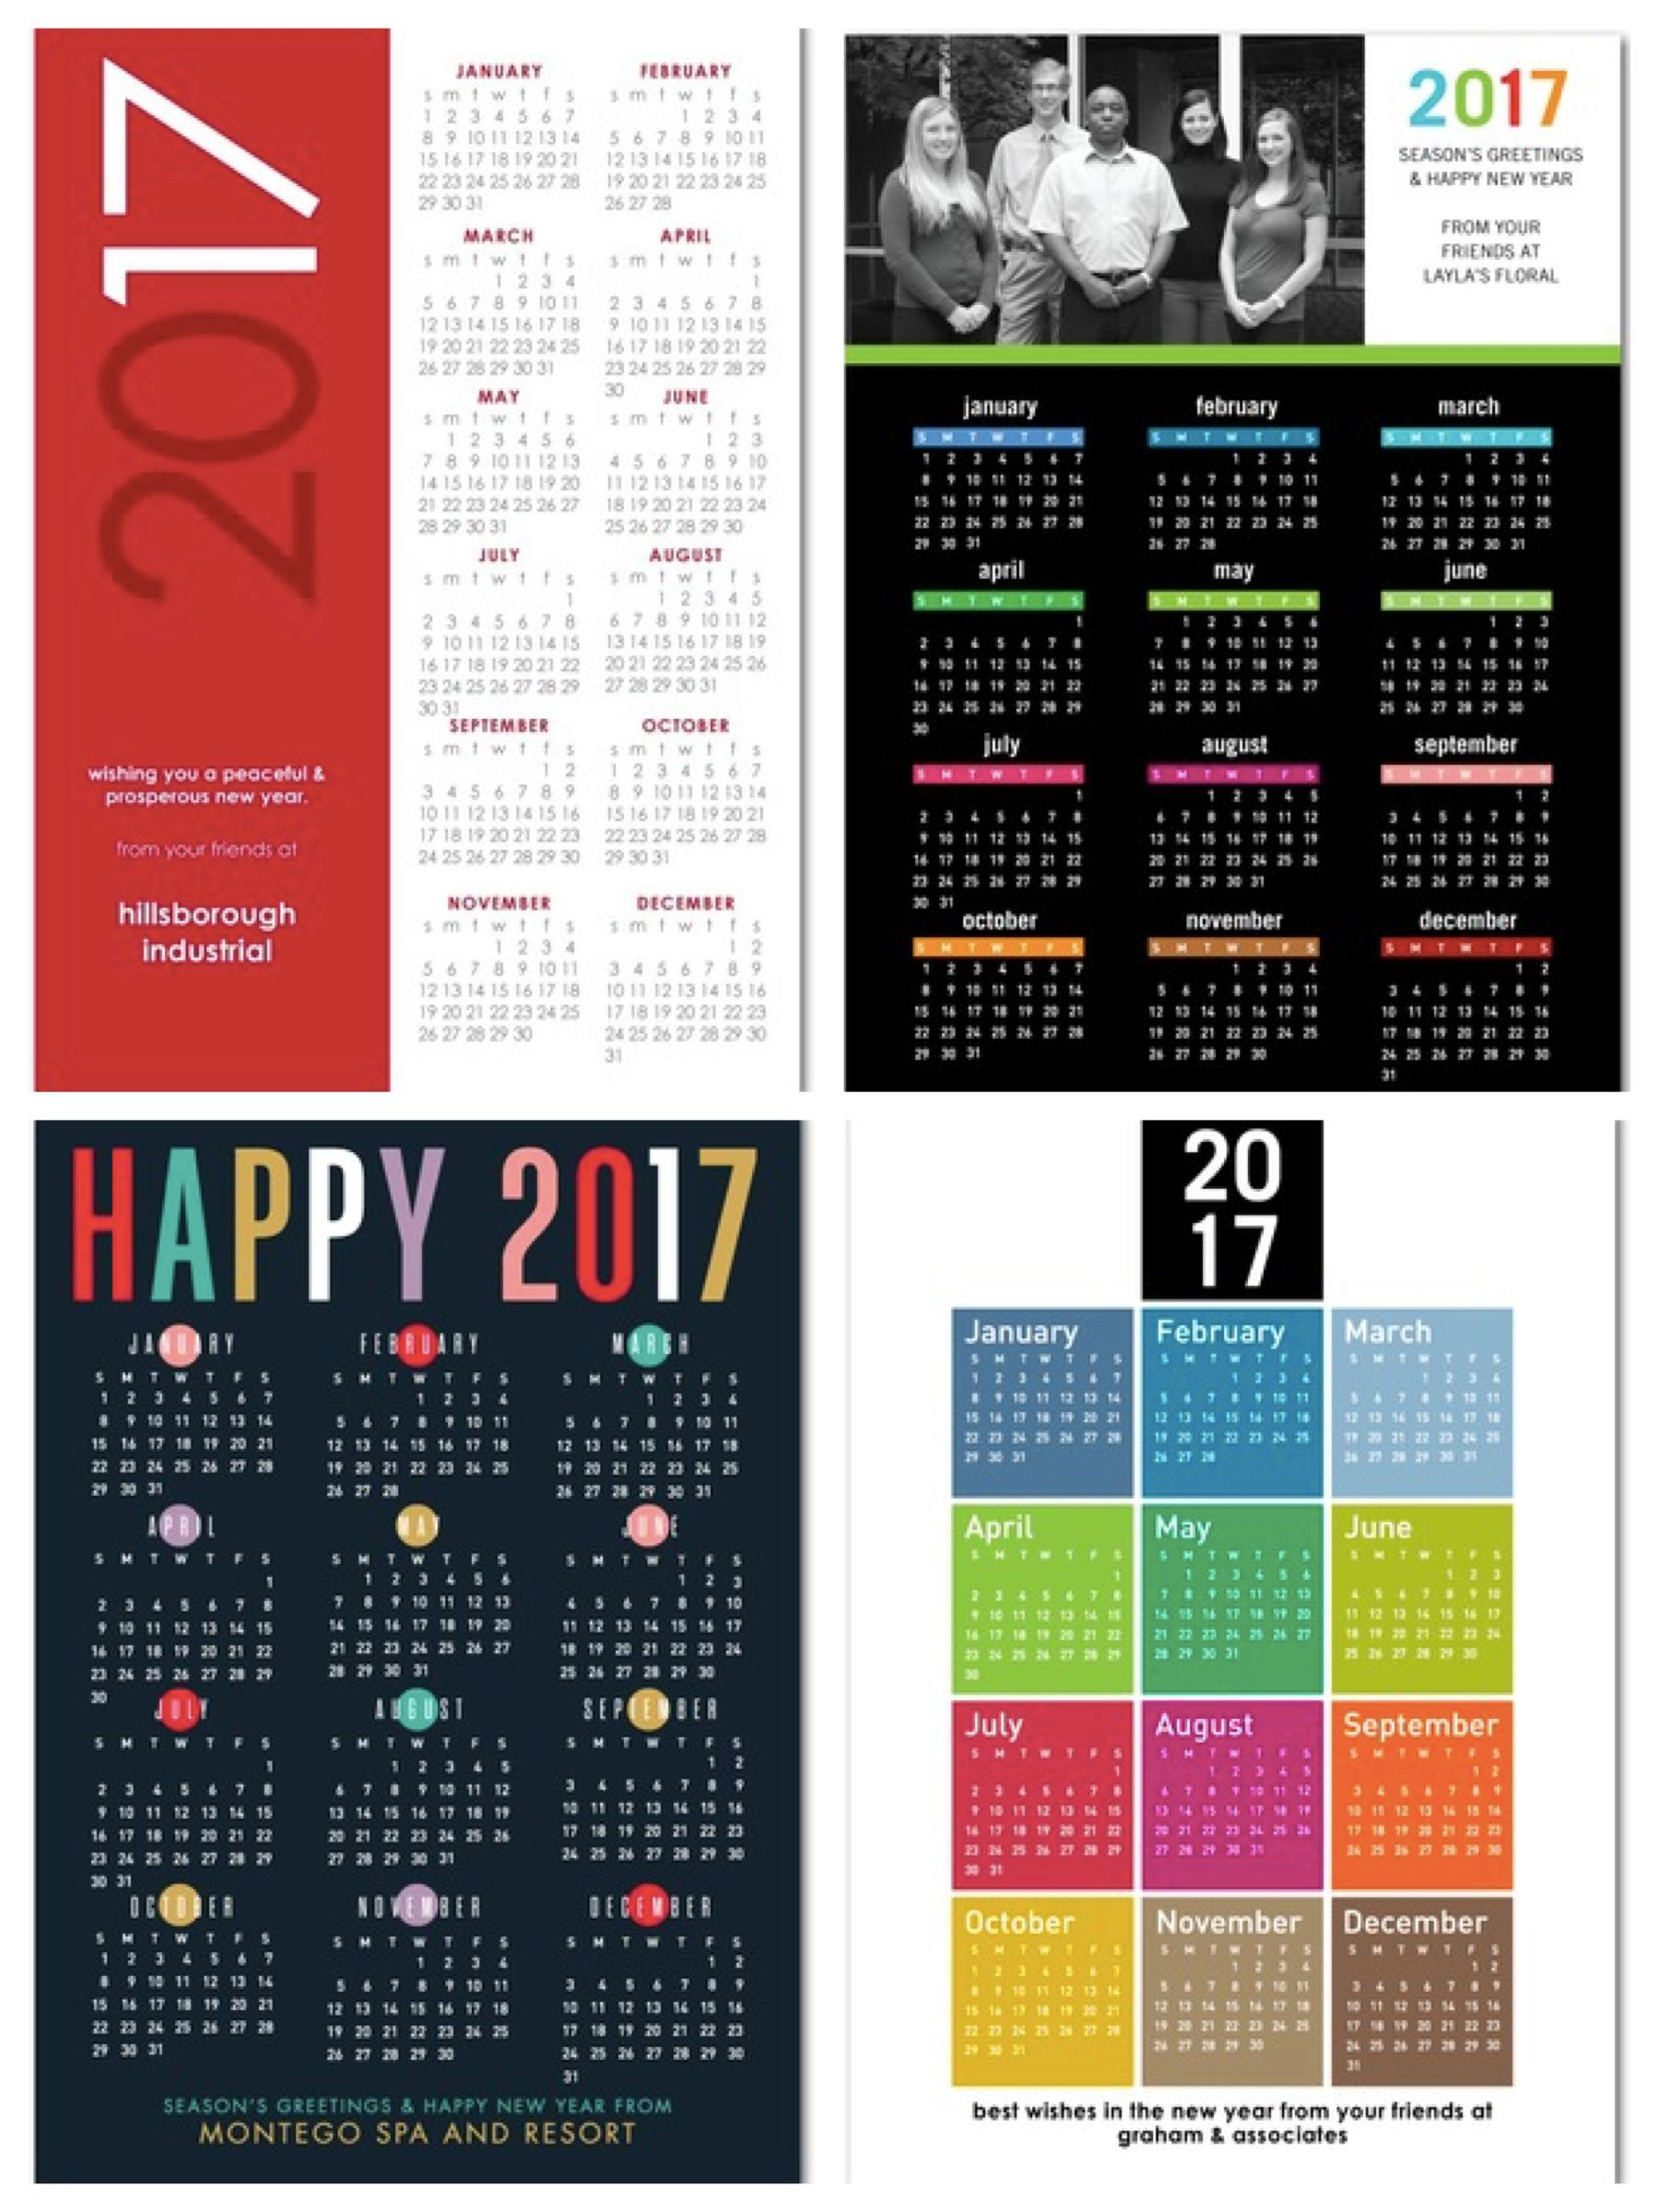 Calendar business holiday cards real estate closing gifts pinterest send new year cards business holiday reheart Choice Image